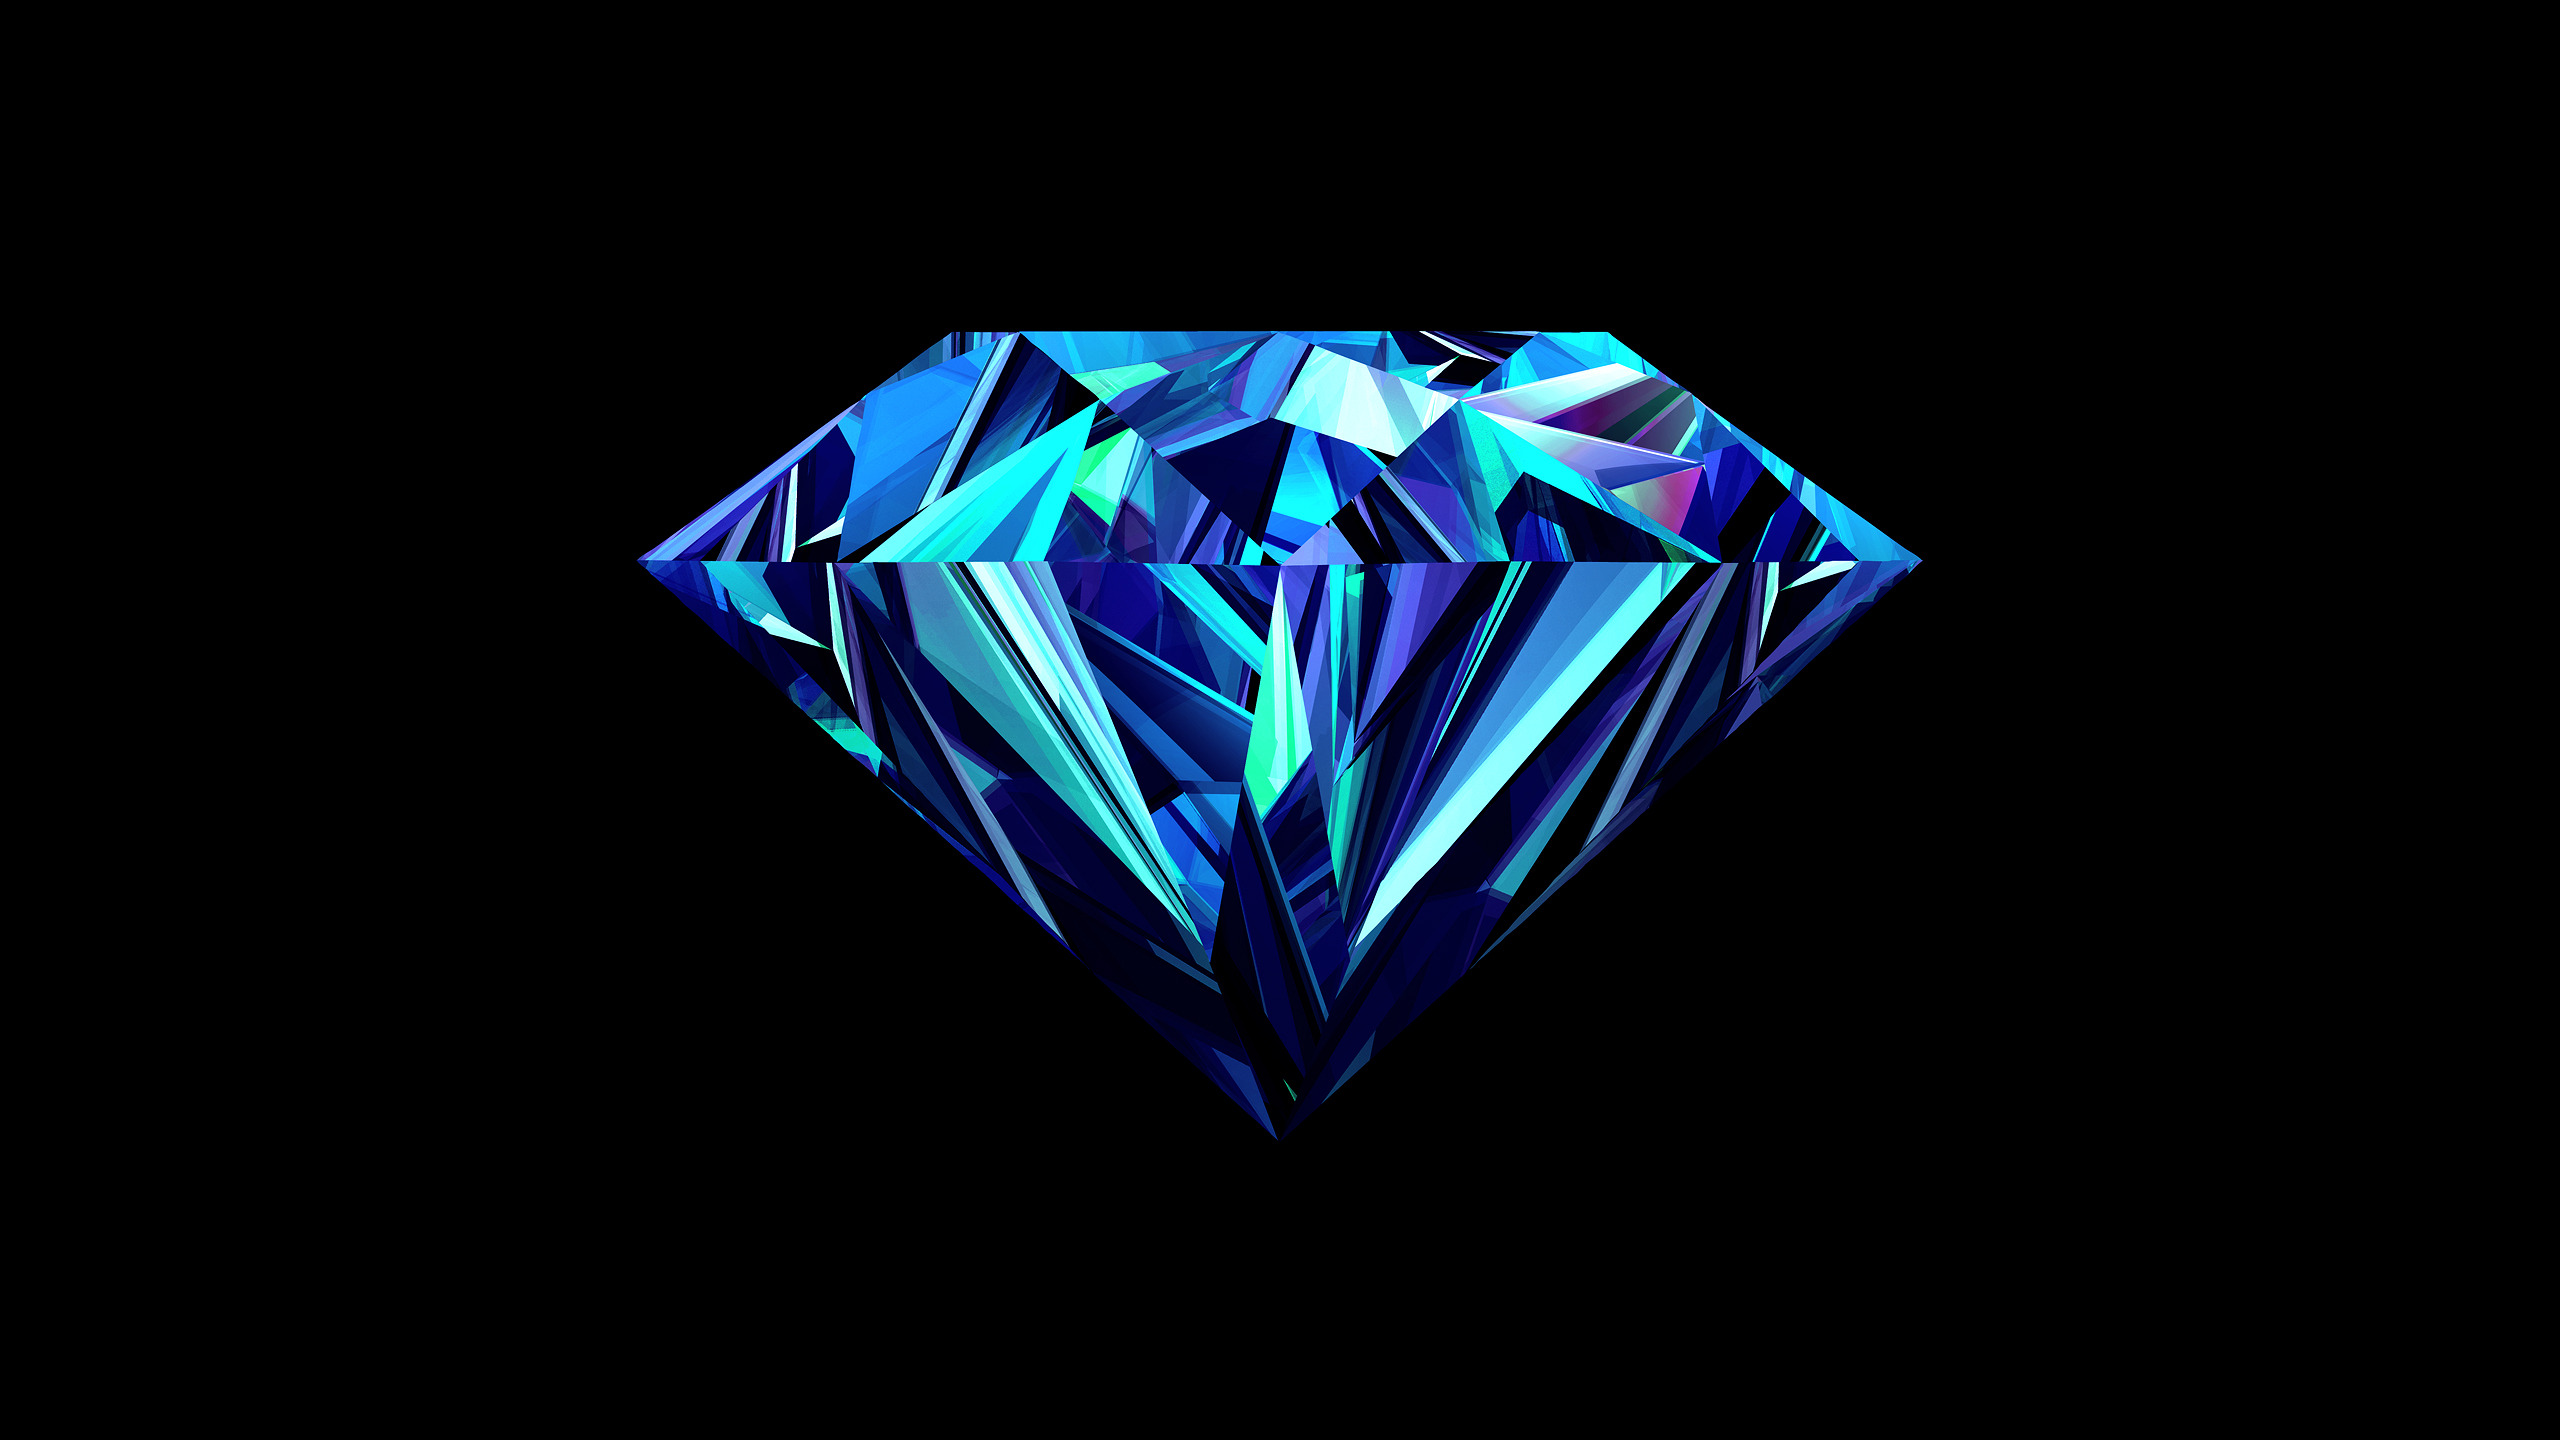 Diamond Wallpaper Background 48970 2560x1440 px HDWallSourcecom